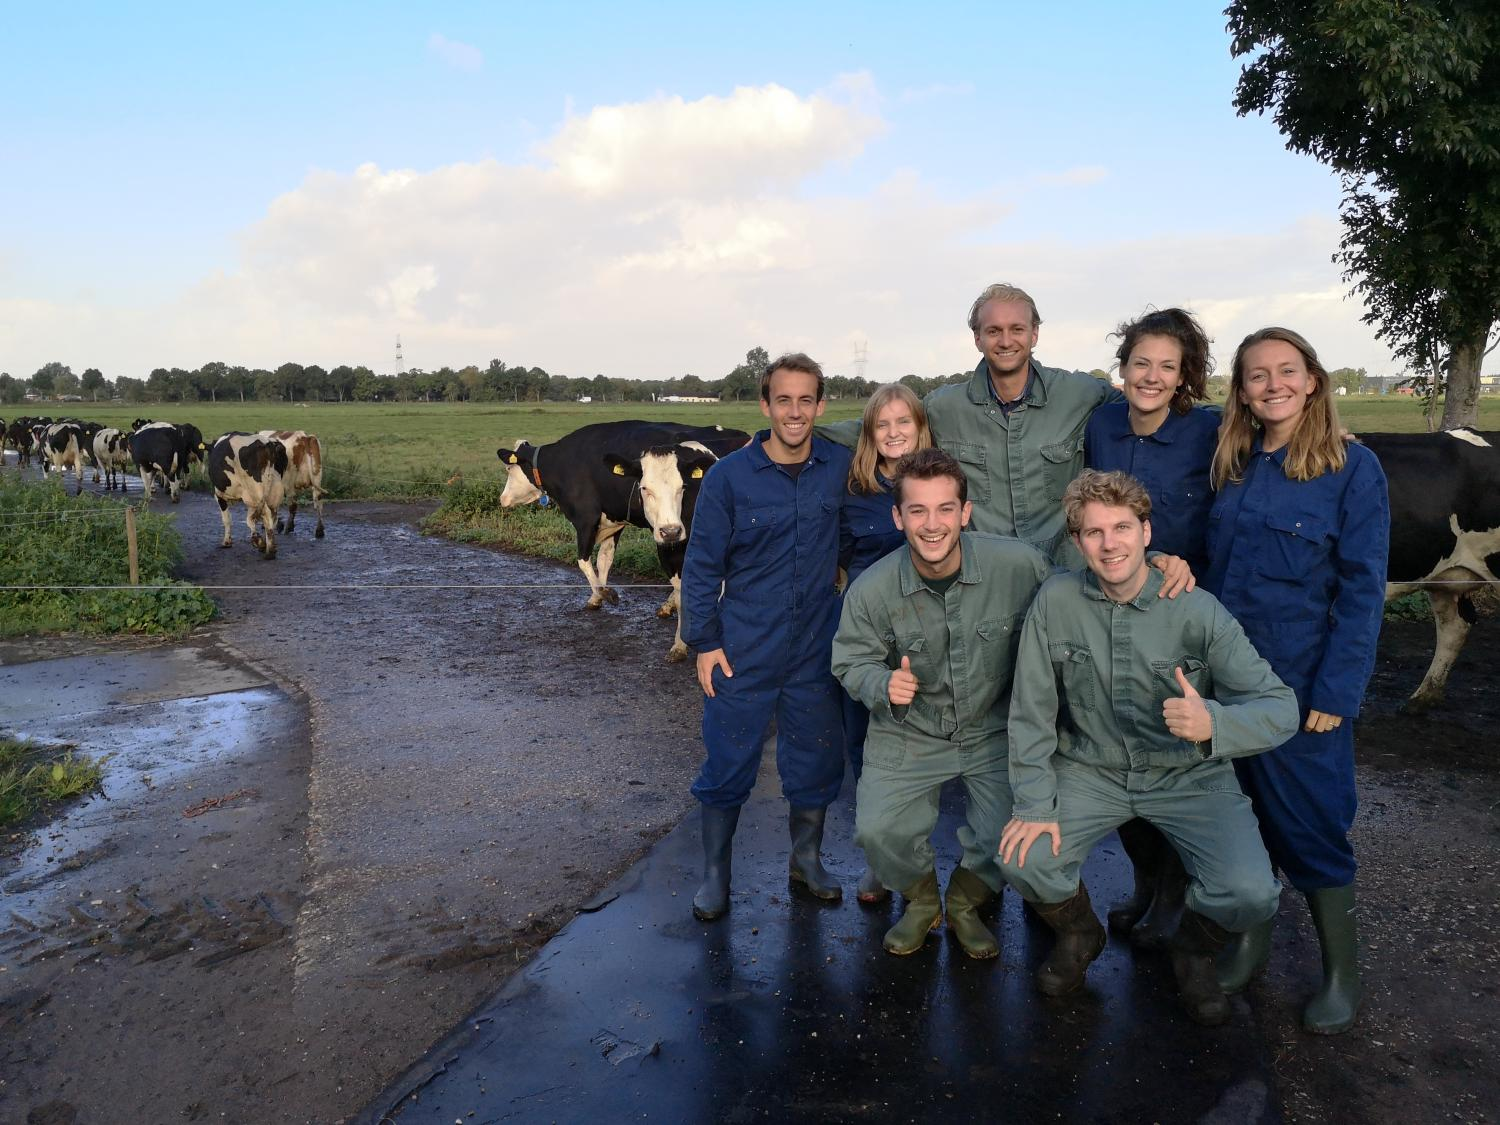 Trainees at FrieslandCampina